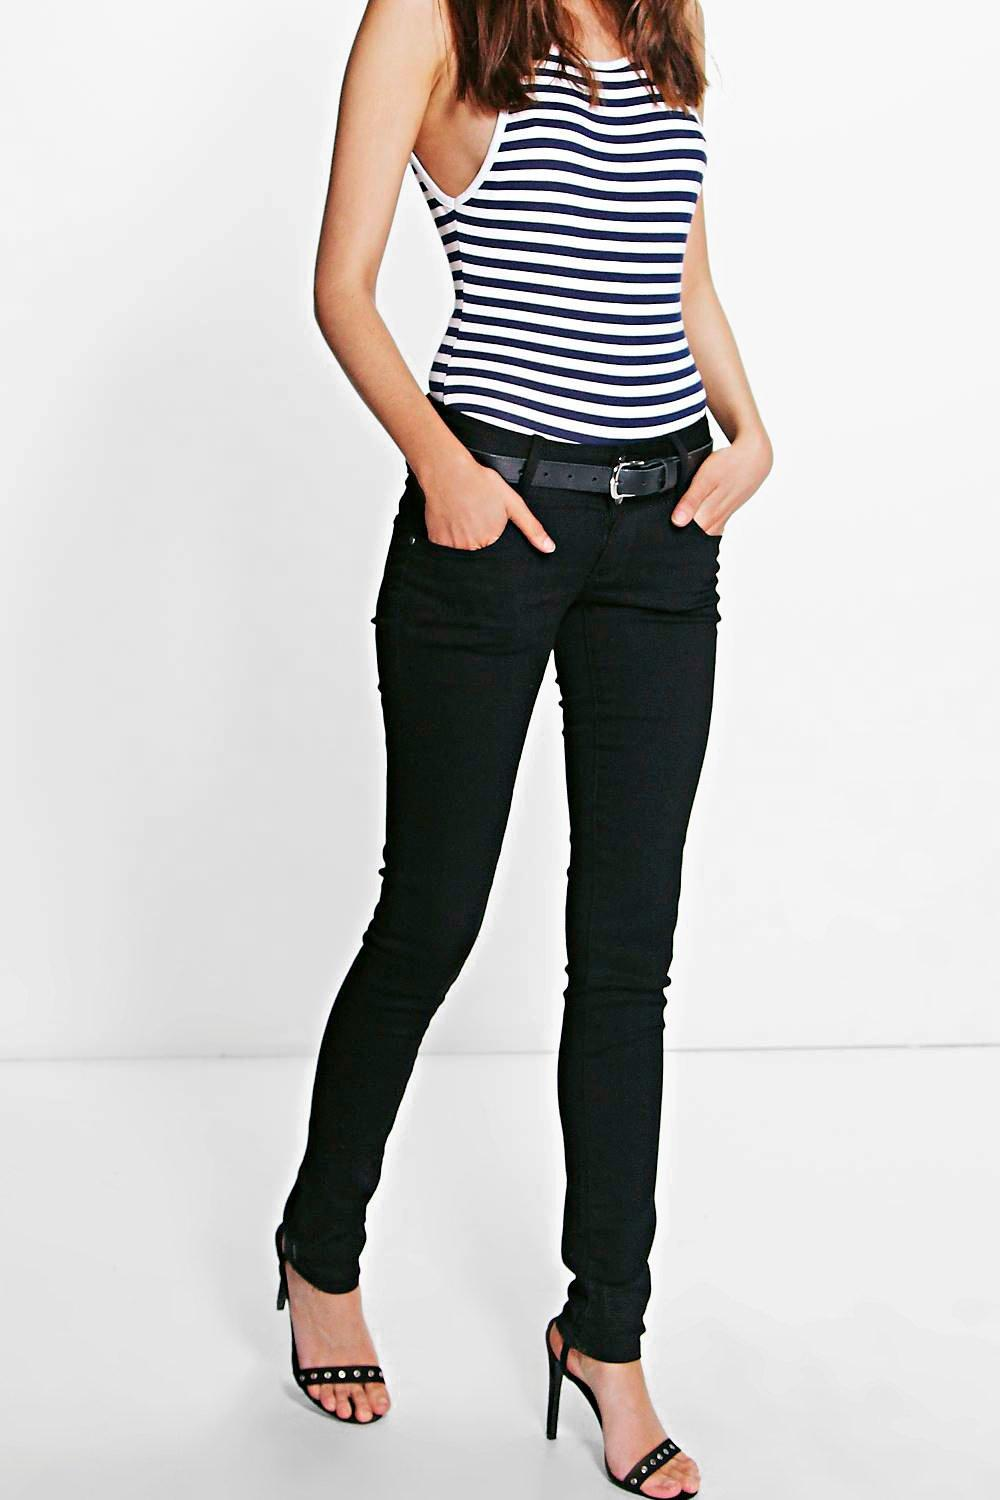 Jade Black High Waist Skinny Jean